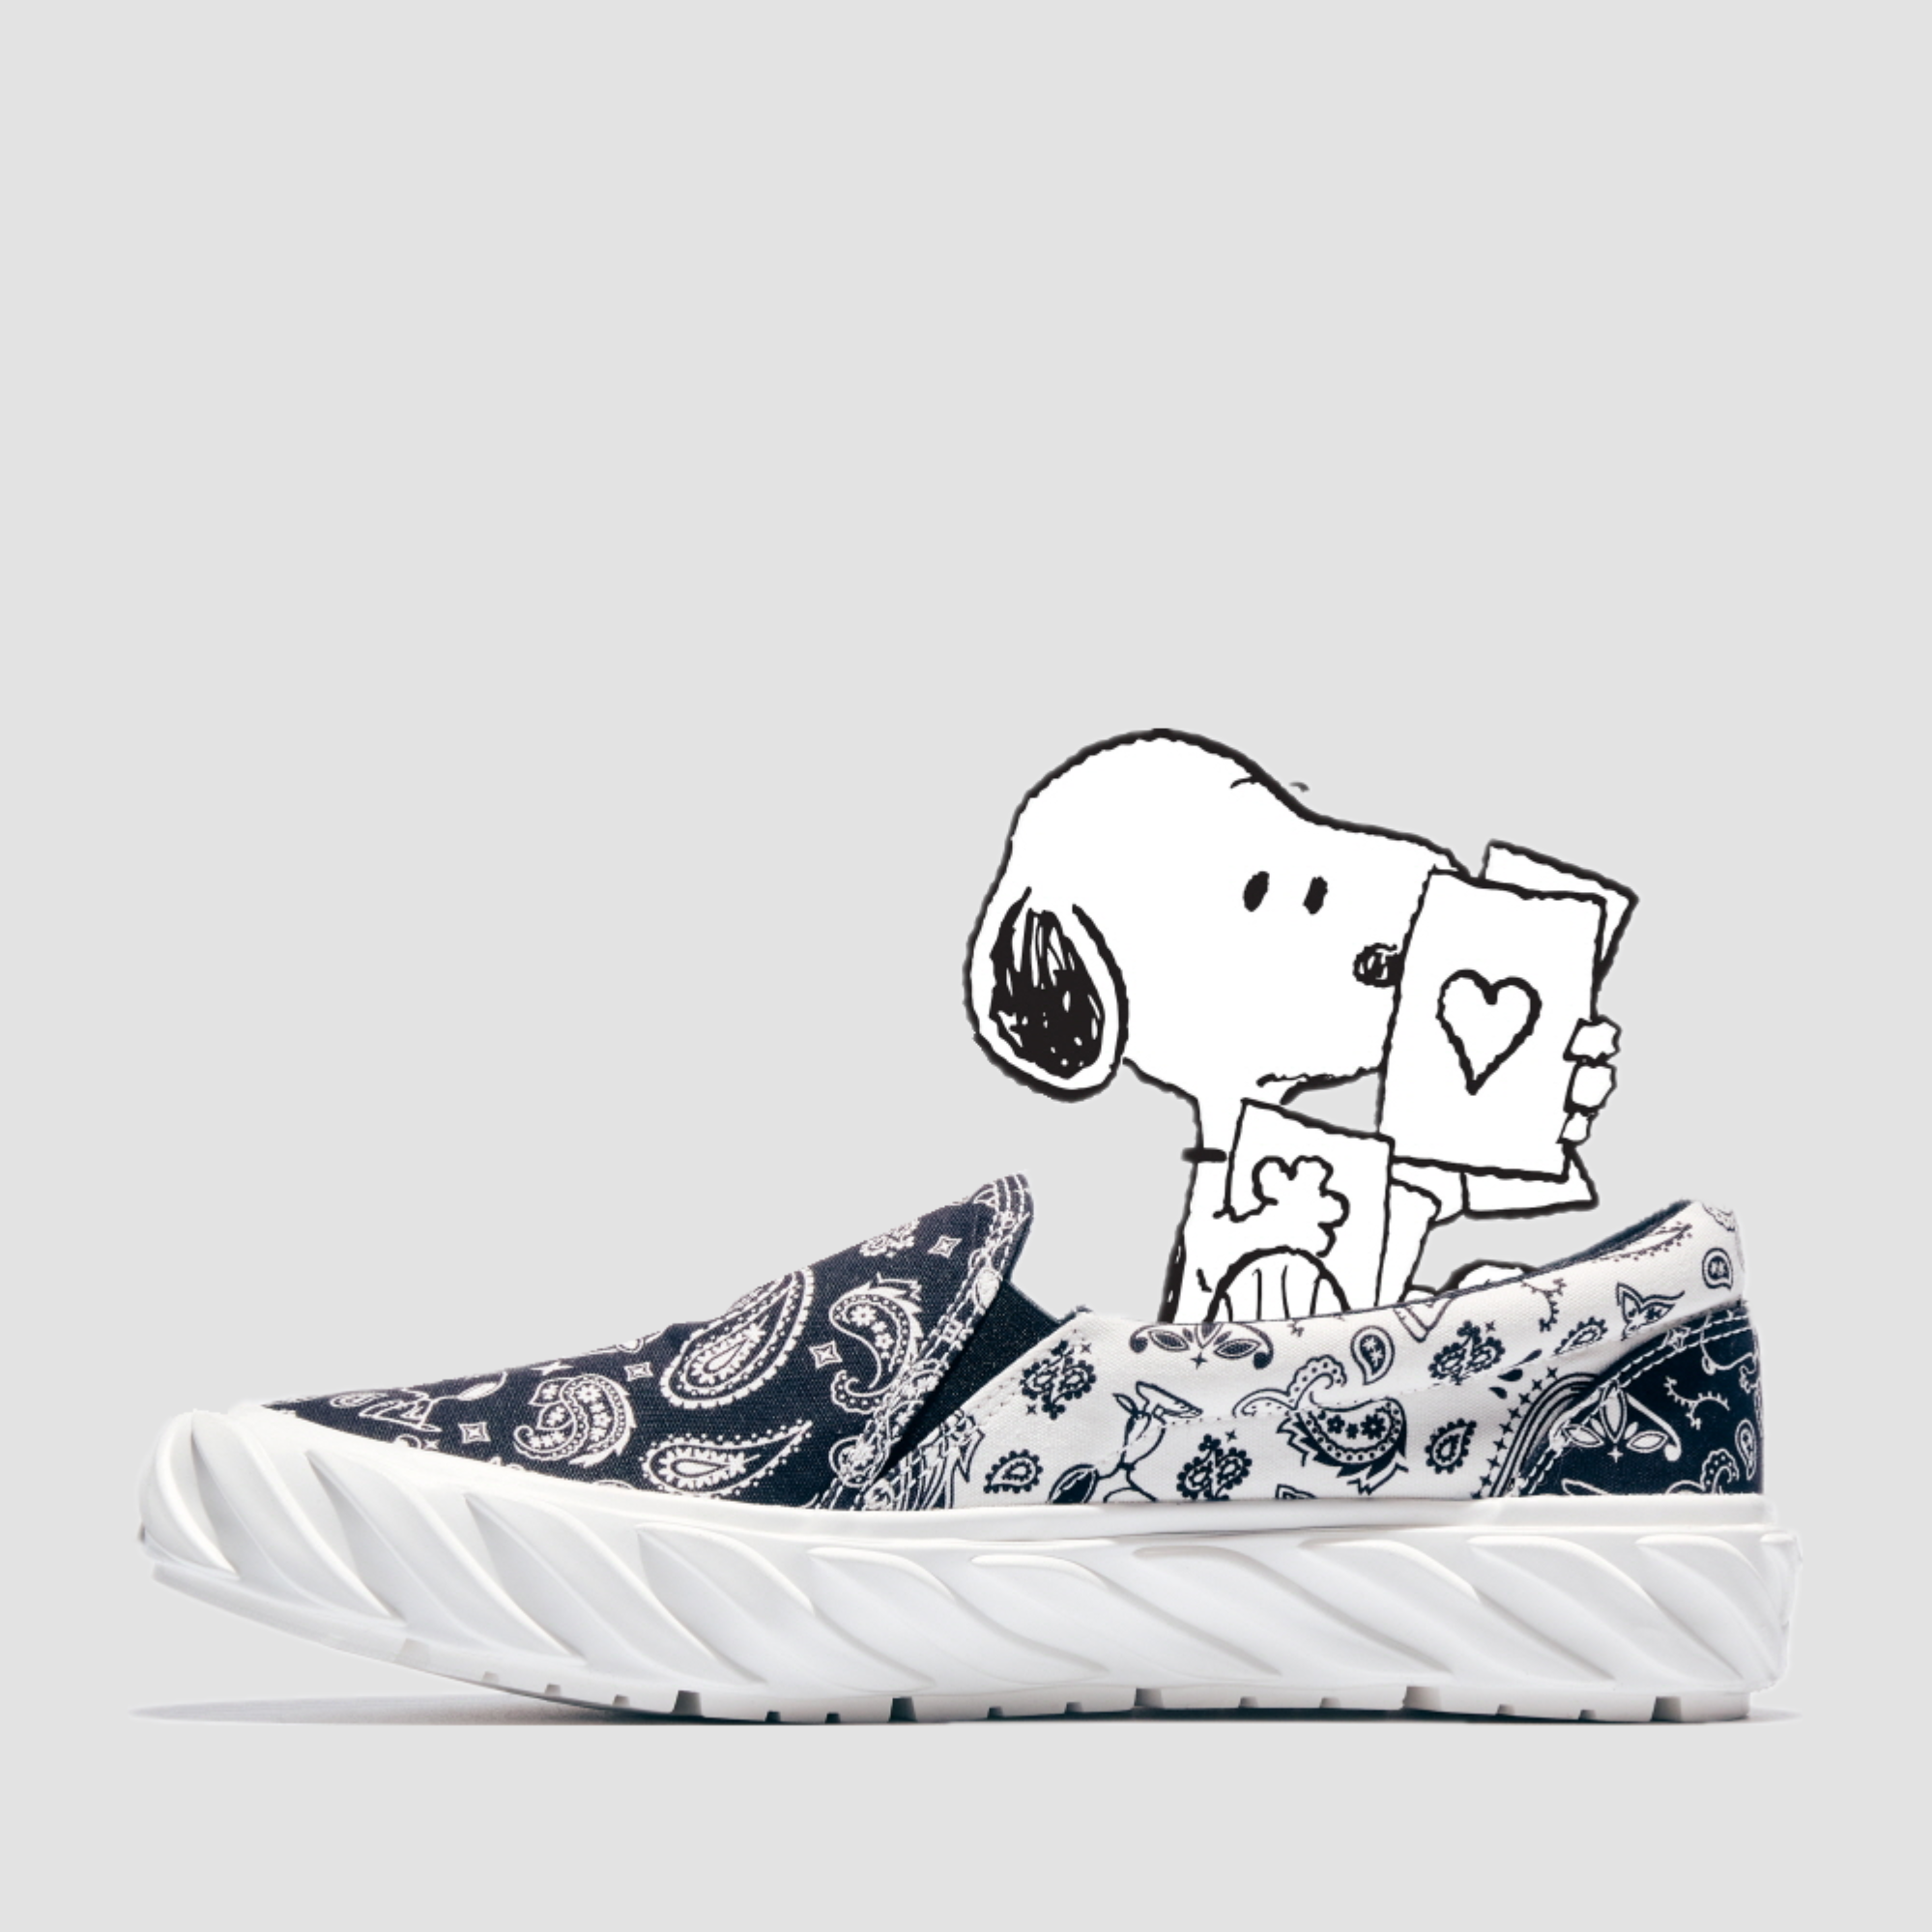 AGE X Snoopy Bandanna ON BW - 6월 04일 예약배송